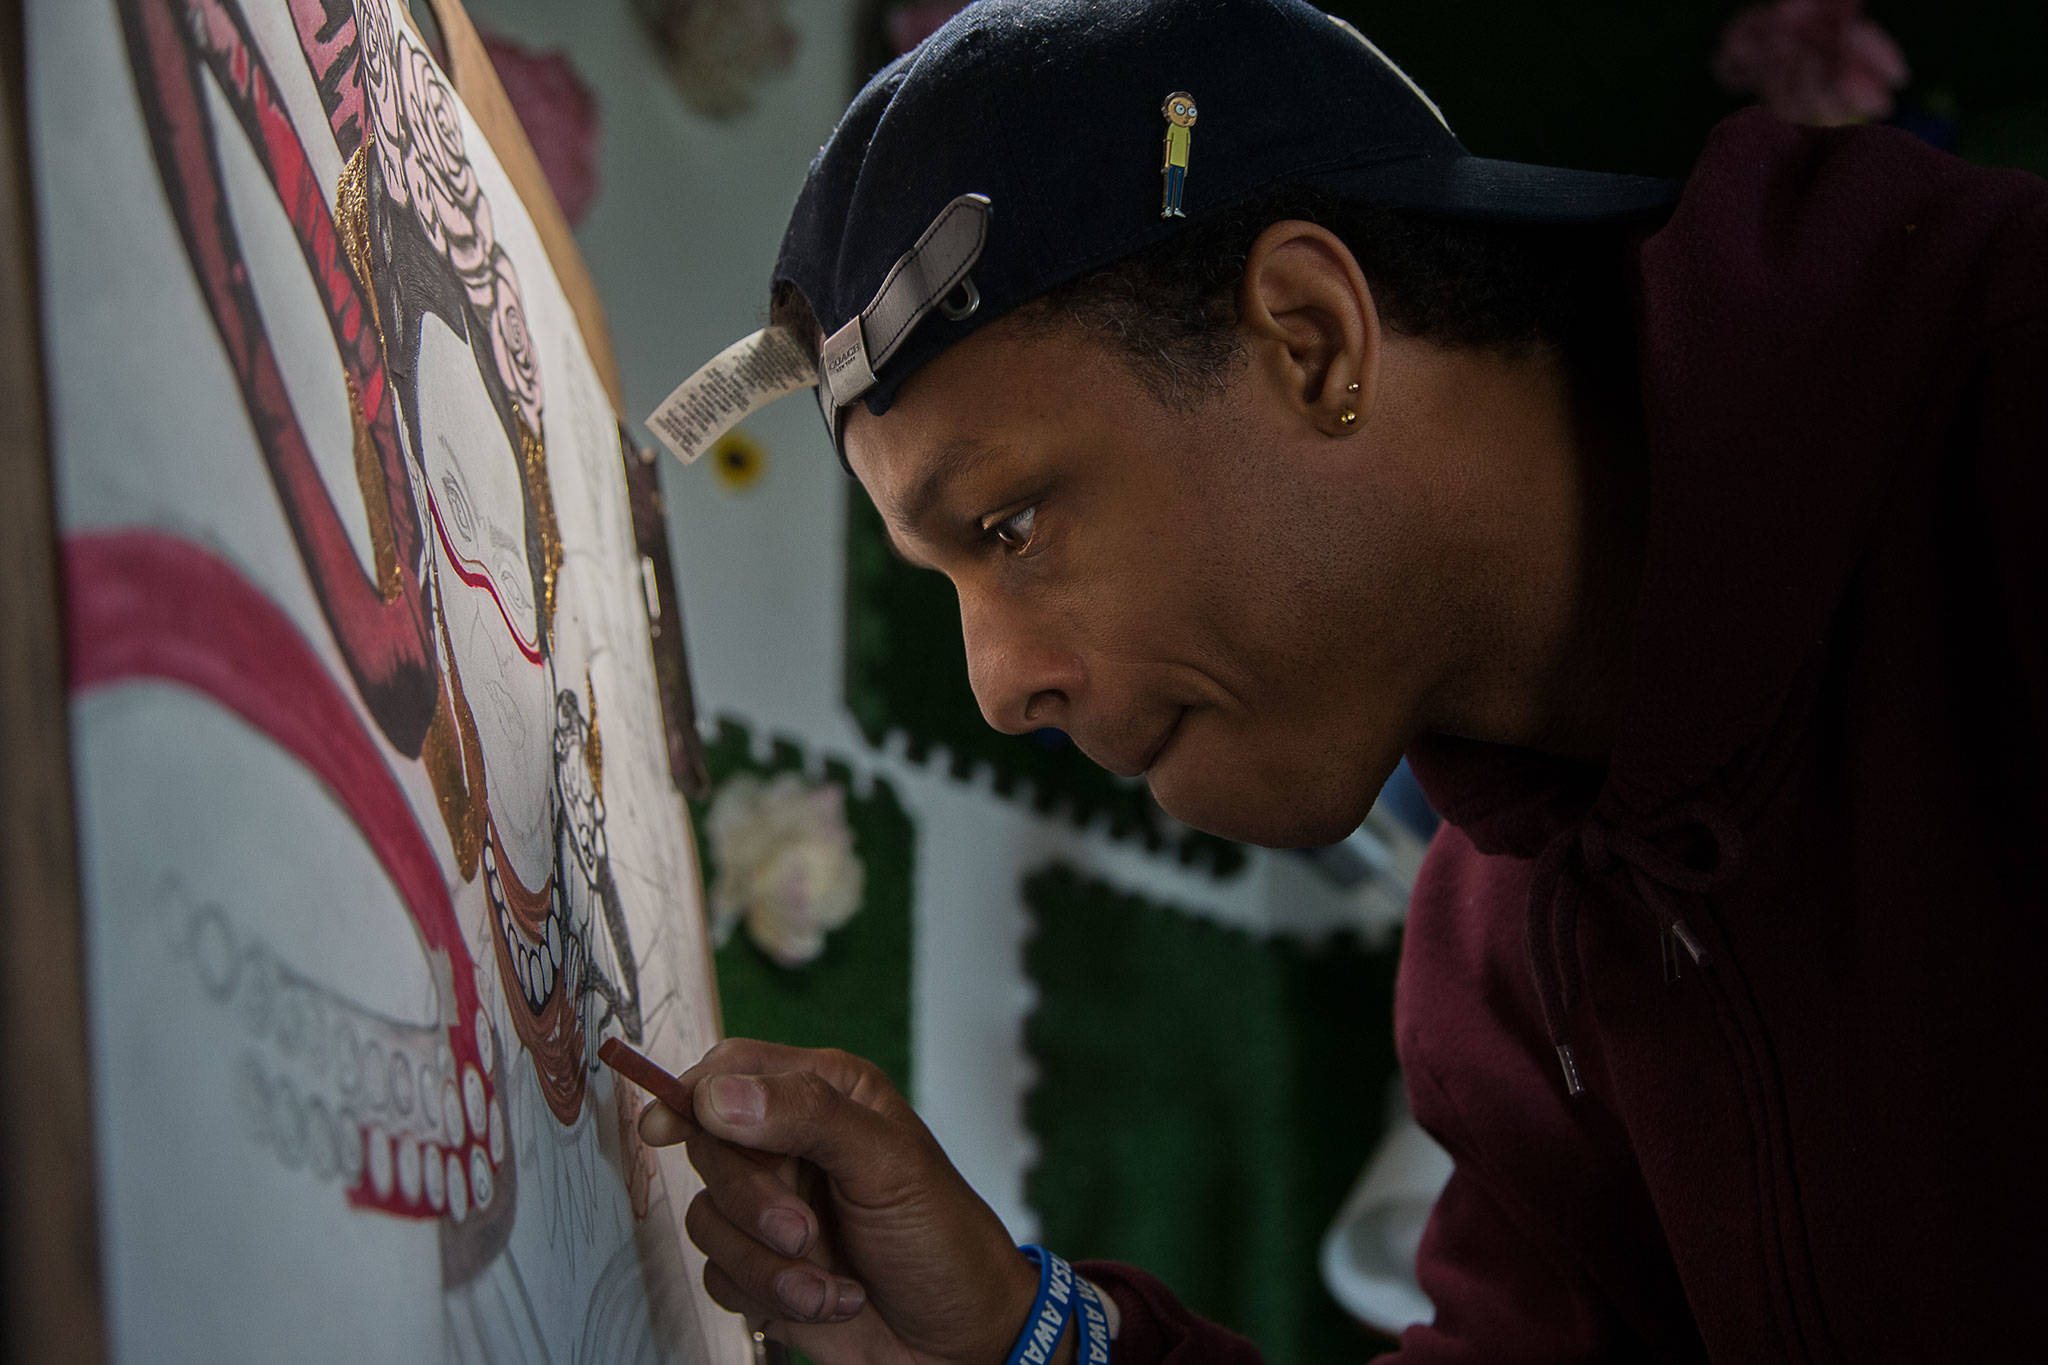 Julius Wilson's artwork can be seen at Zoey's Fried Chicken Sandwiches on Casino Road in south Everett. (Andy Bronson / The Herald)